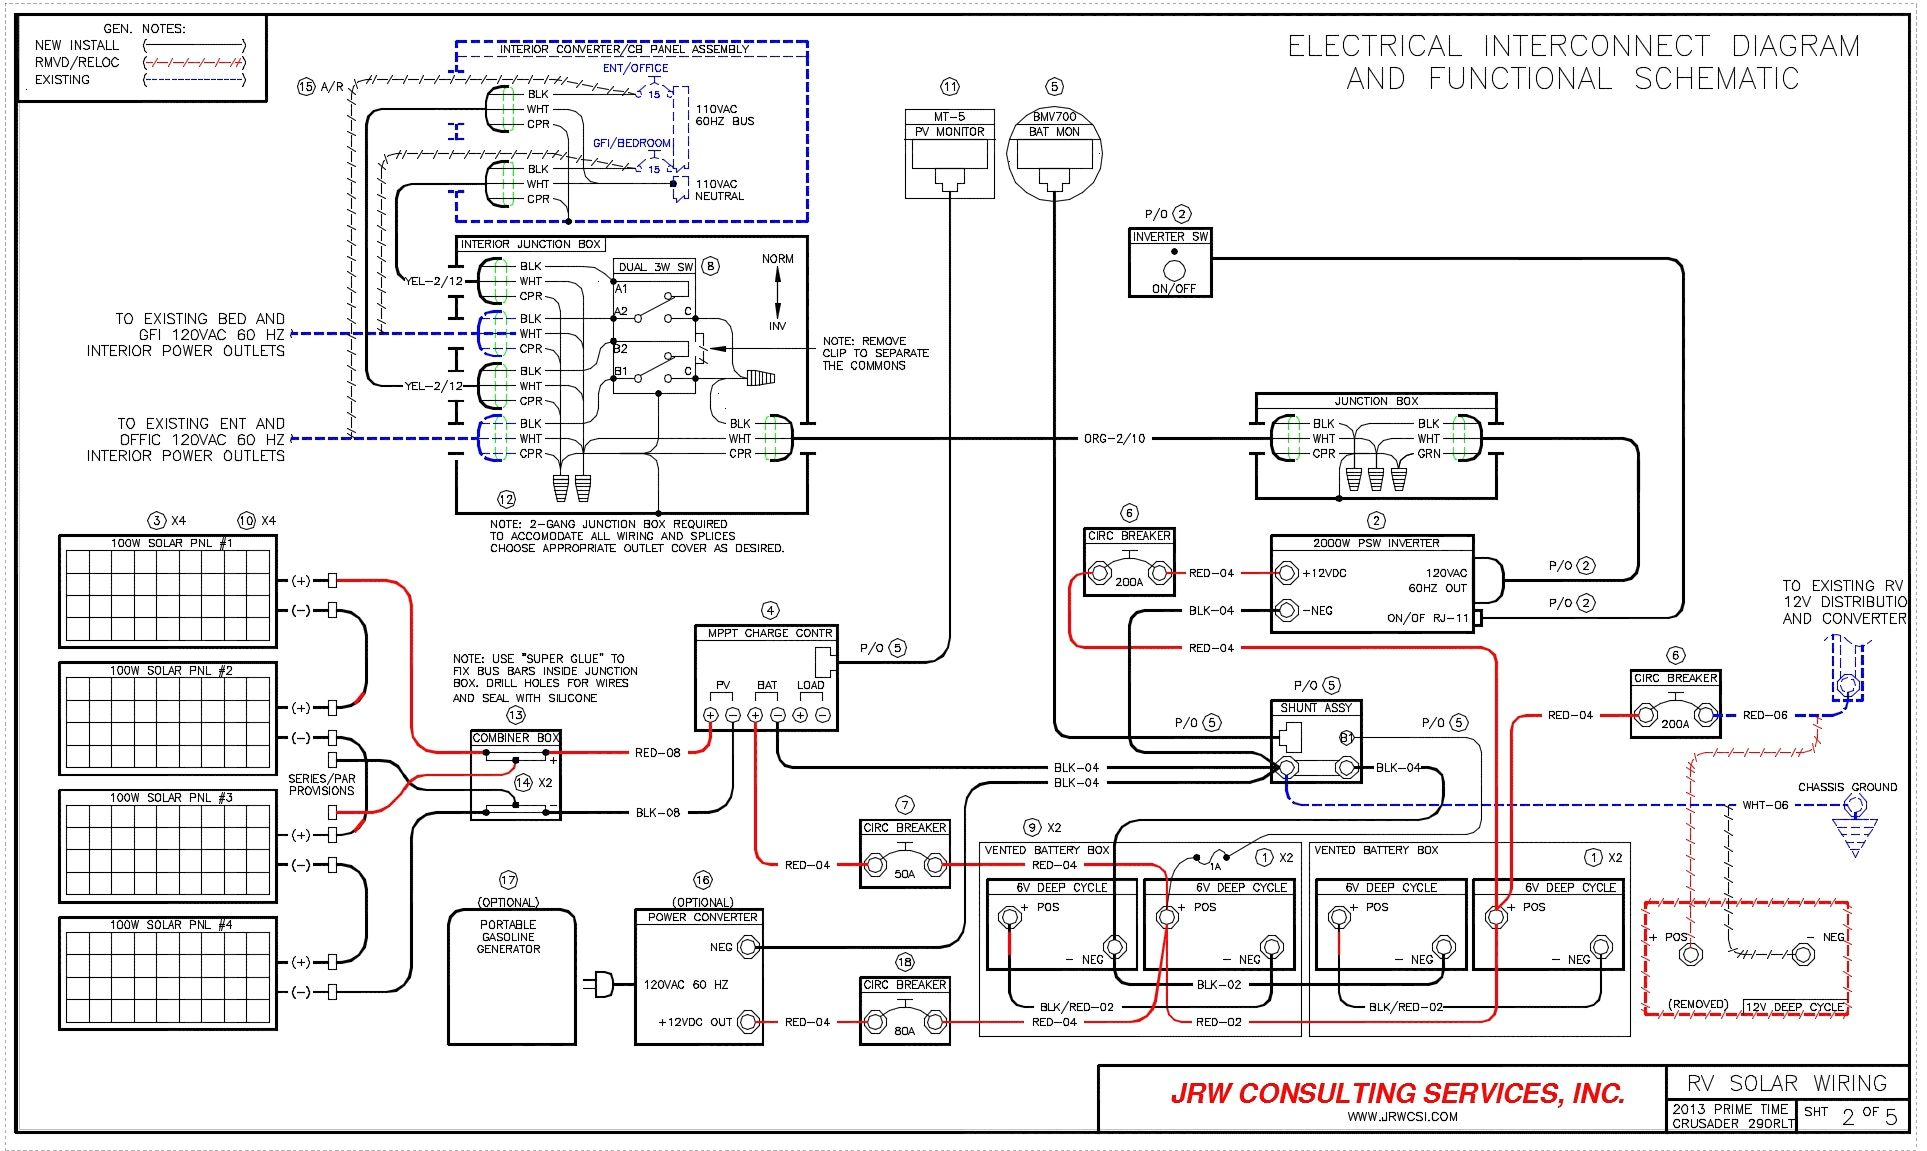 rv power upgrade live breathe move beautiful wiring diagram for solar power system [ 1927 x 1151 Pixel ]